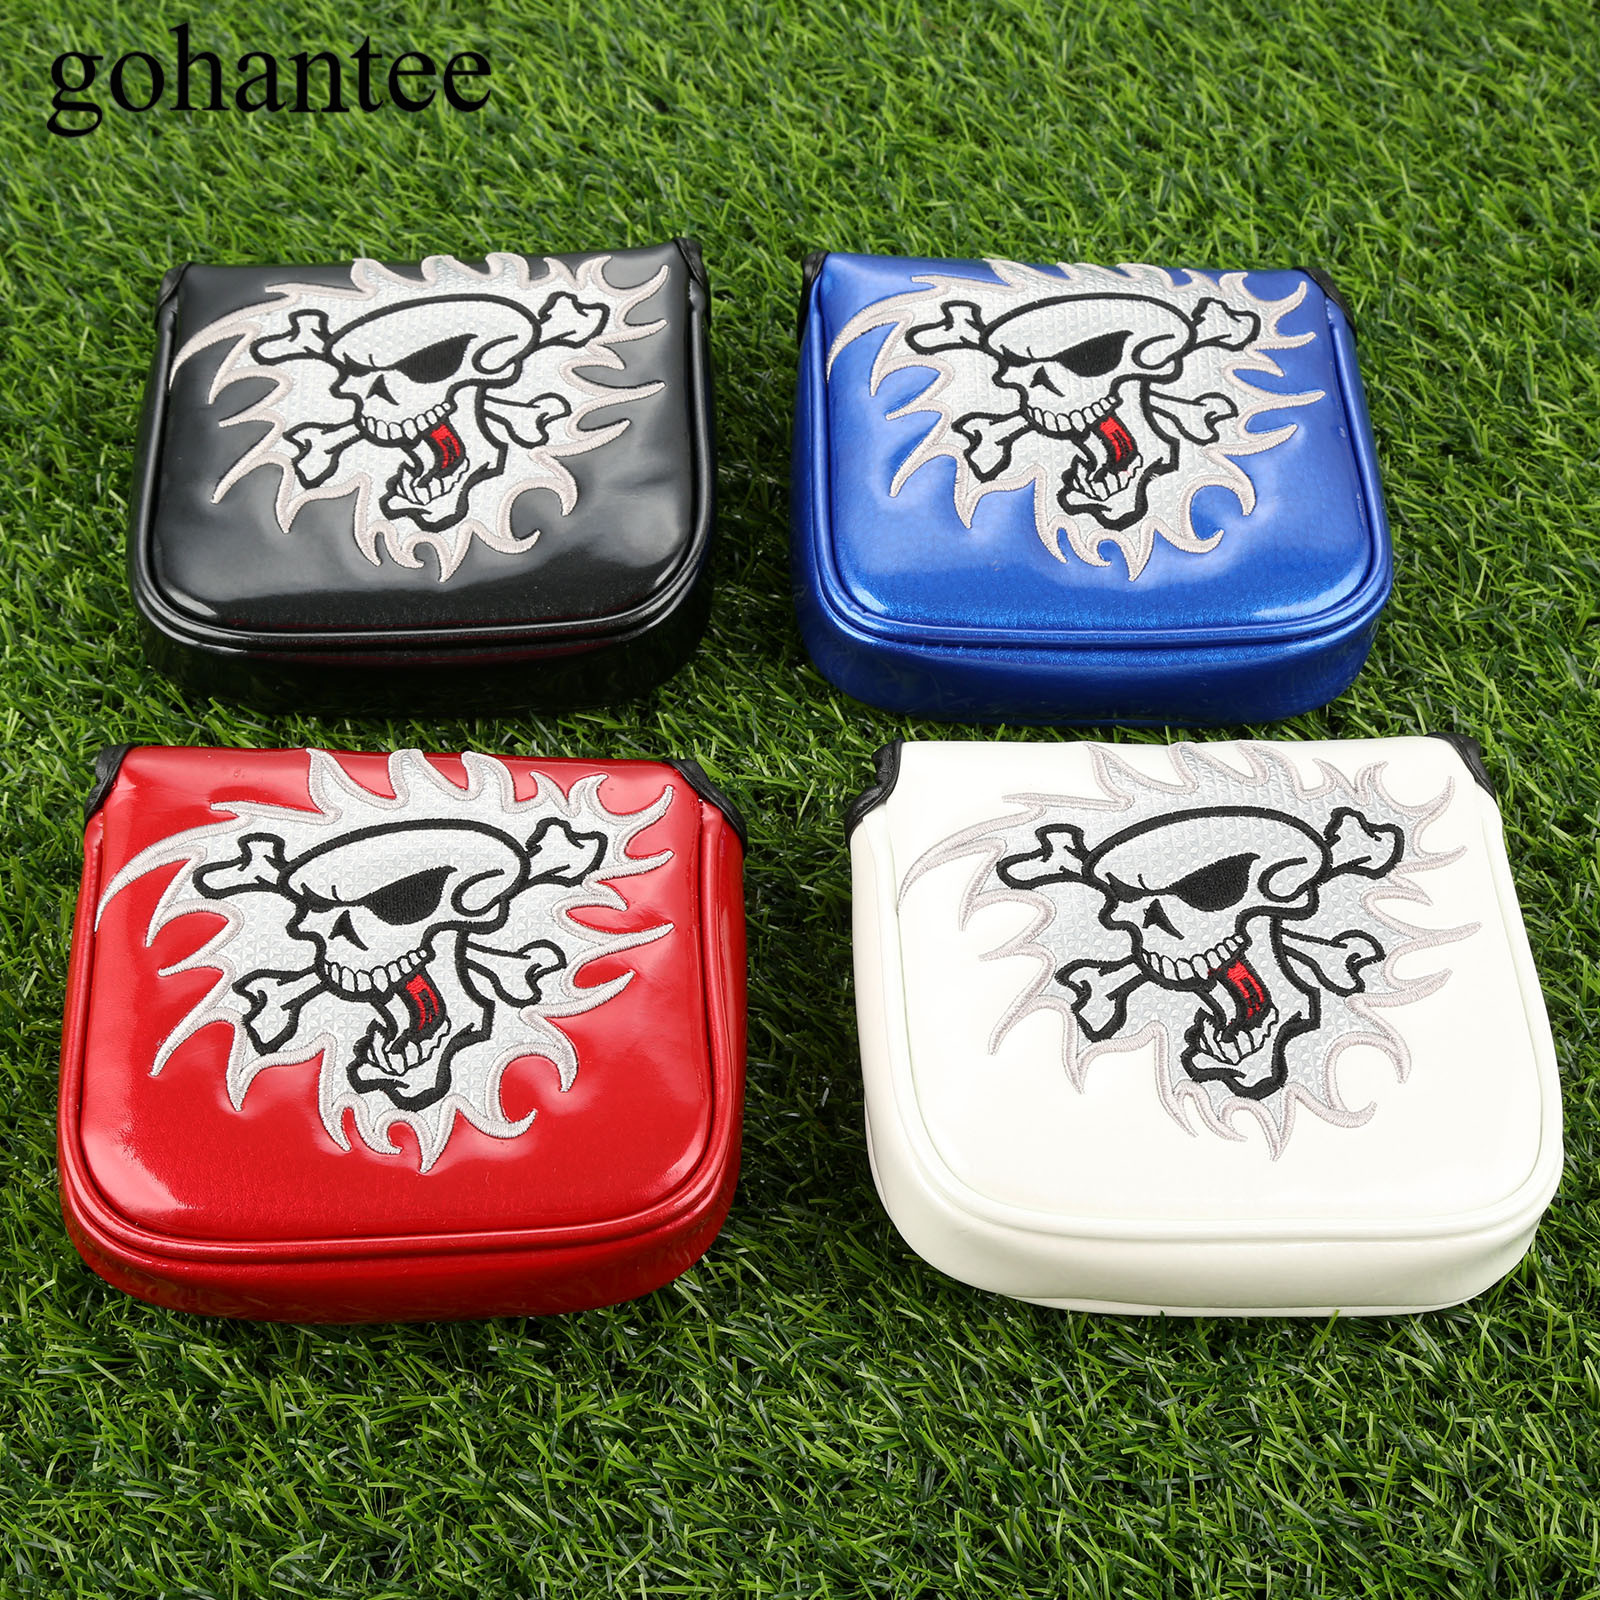 1 Pc Square Golf Putter Headcover PU Leather Golf Club Head Covers With Magnetic Closure Fit All Mallet Style Putters 4 Colours